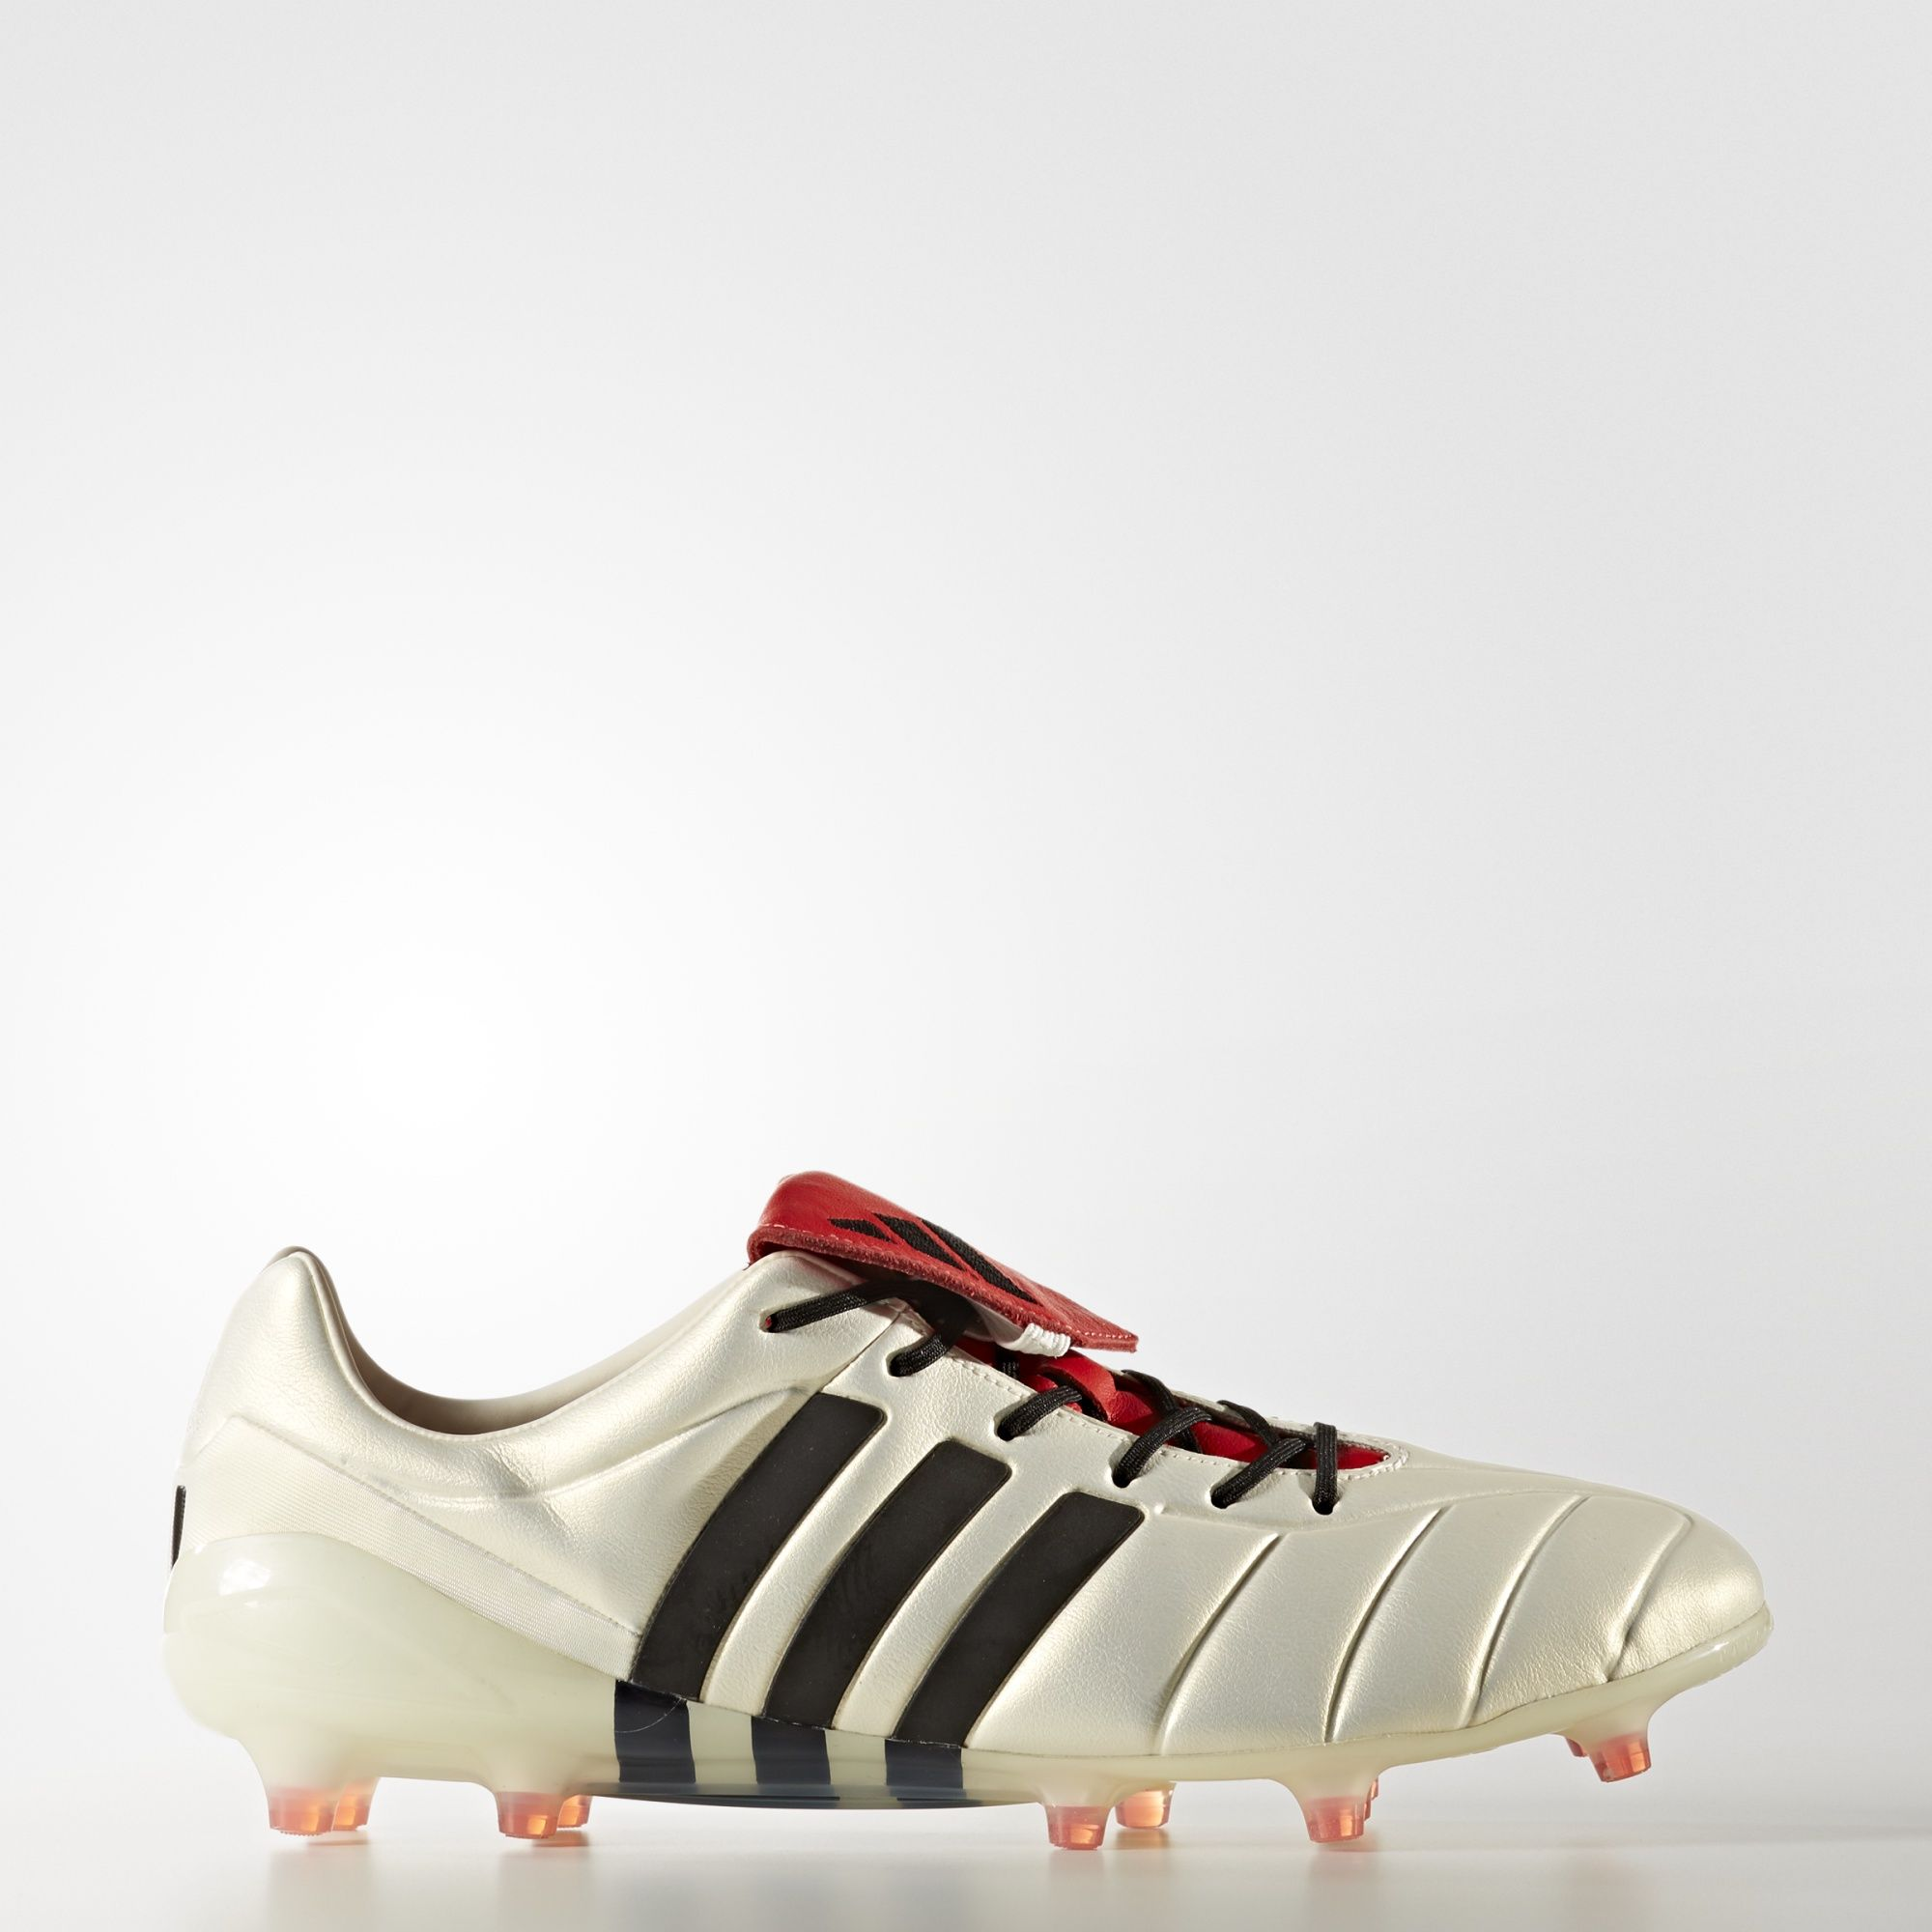 Adidas Predator Mania Champagne Firm Ground Boots Off